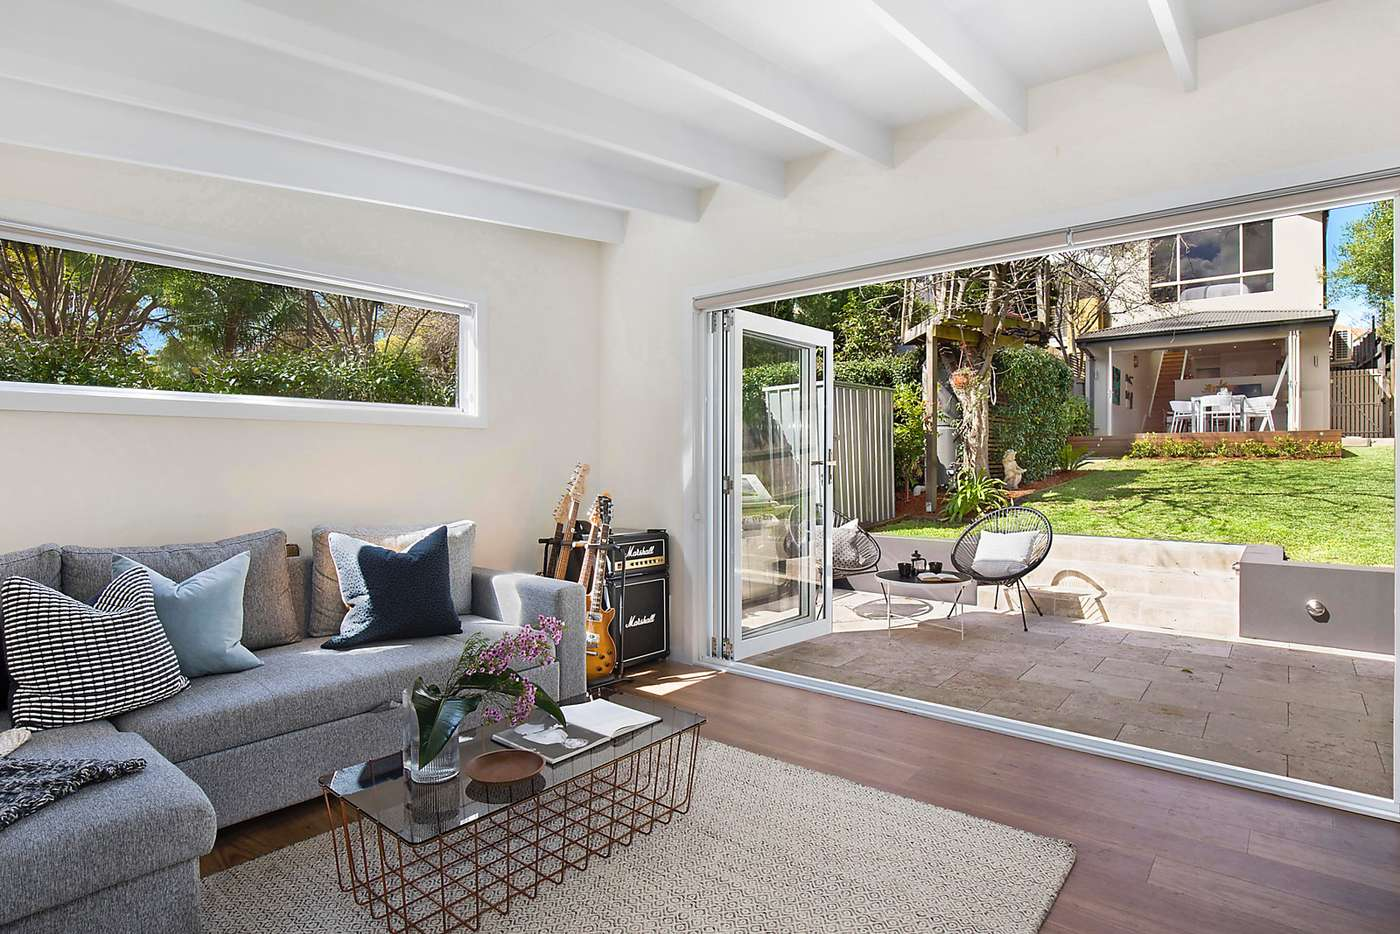 Sixth view of Homely house listing, 56 Northcote Street, Naremburn NSW 2065